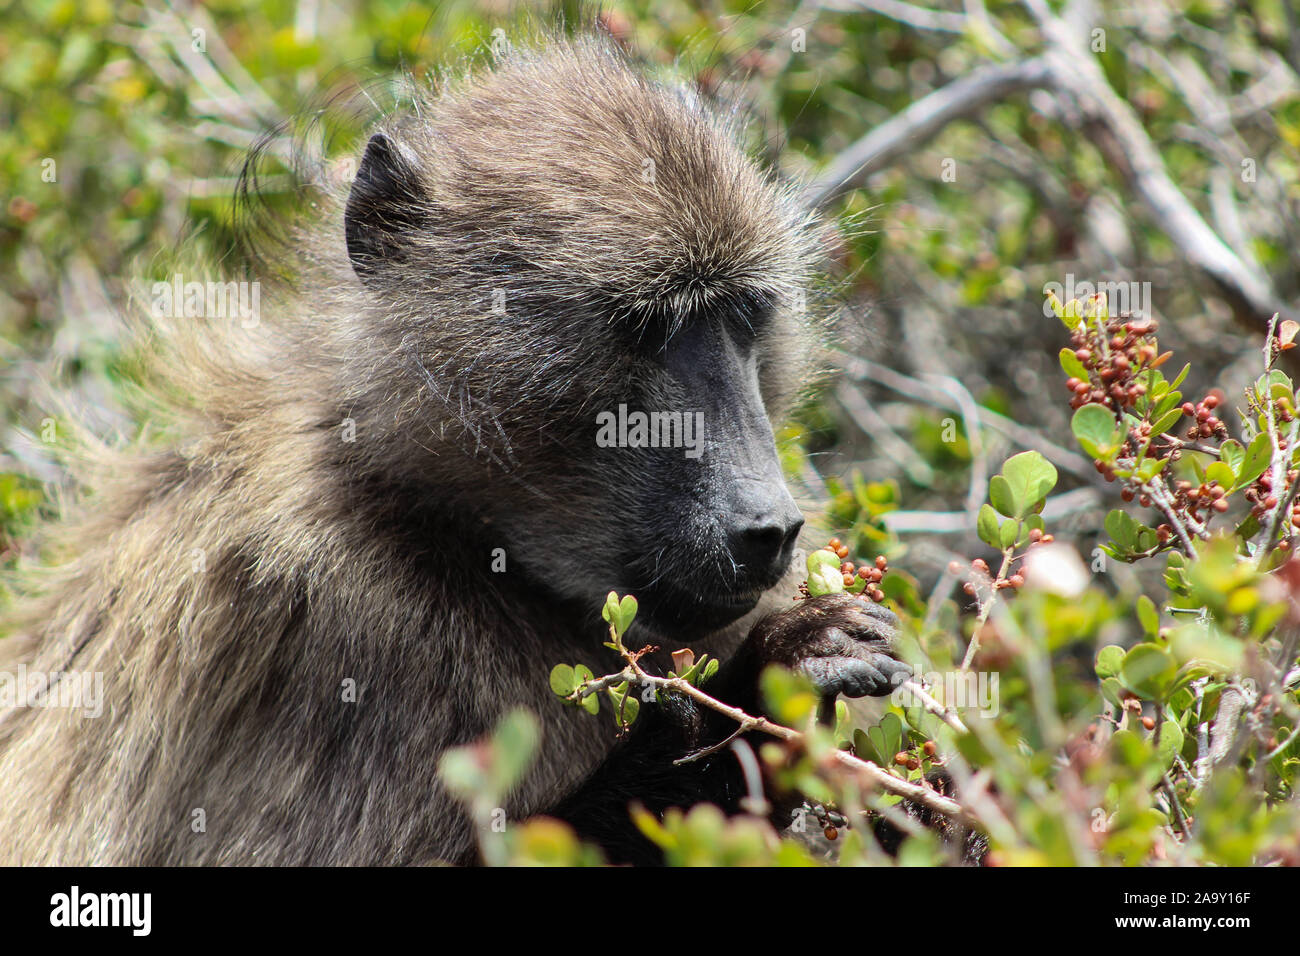 Baboon picks berries from the bush Stock Photo